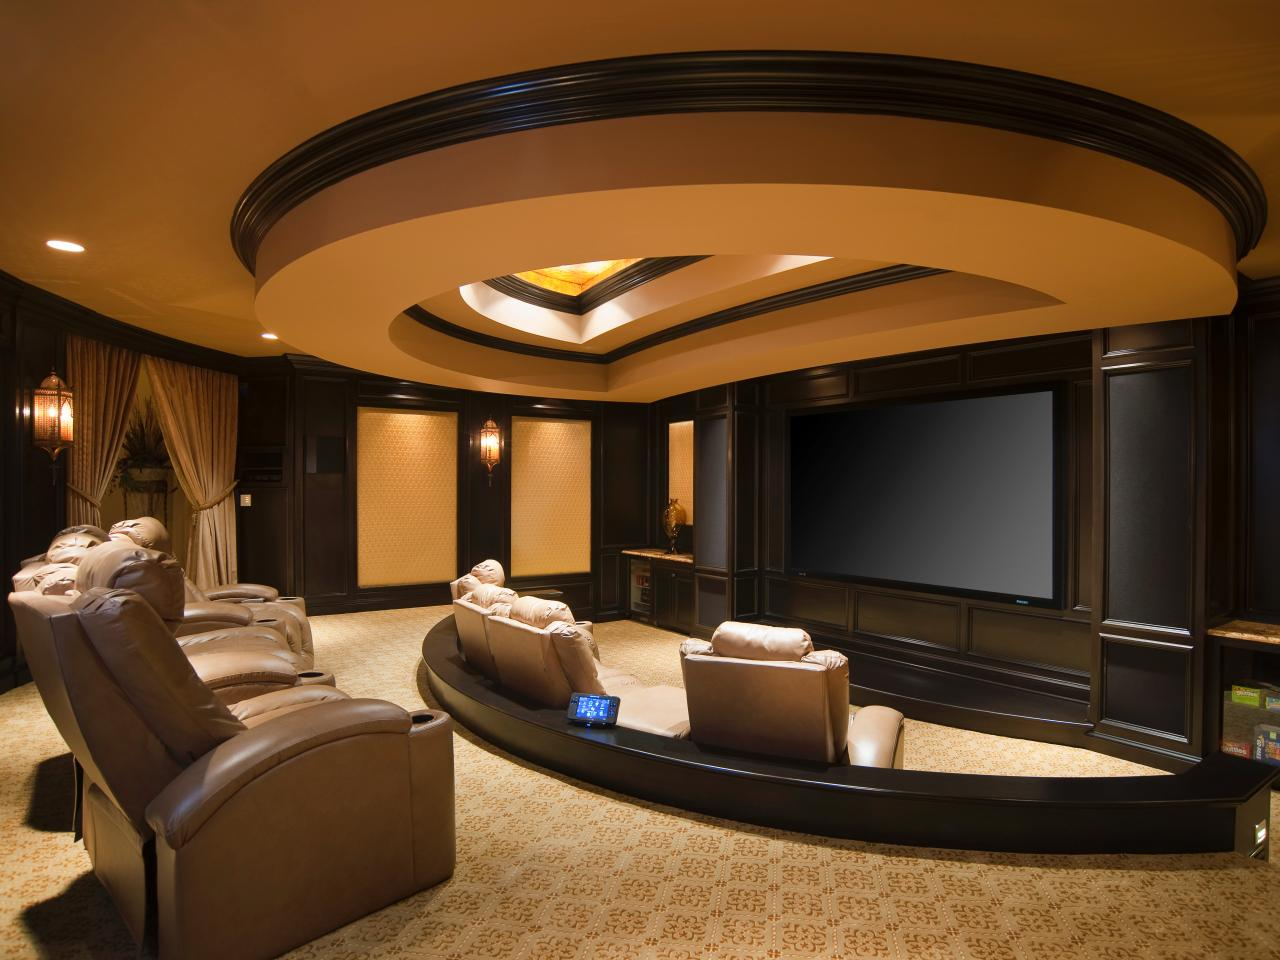 Home Theater Room Design Ideas magnificent home theater room design ideas with super large led tv attached to the wall and beige fabric material comfortable sofa equipped with orange Mountain Motif